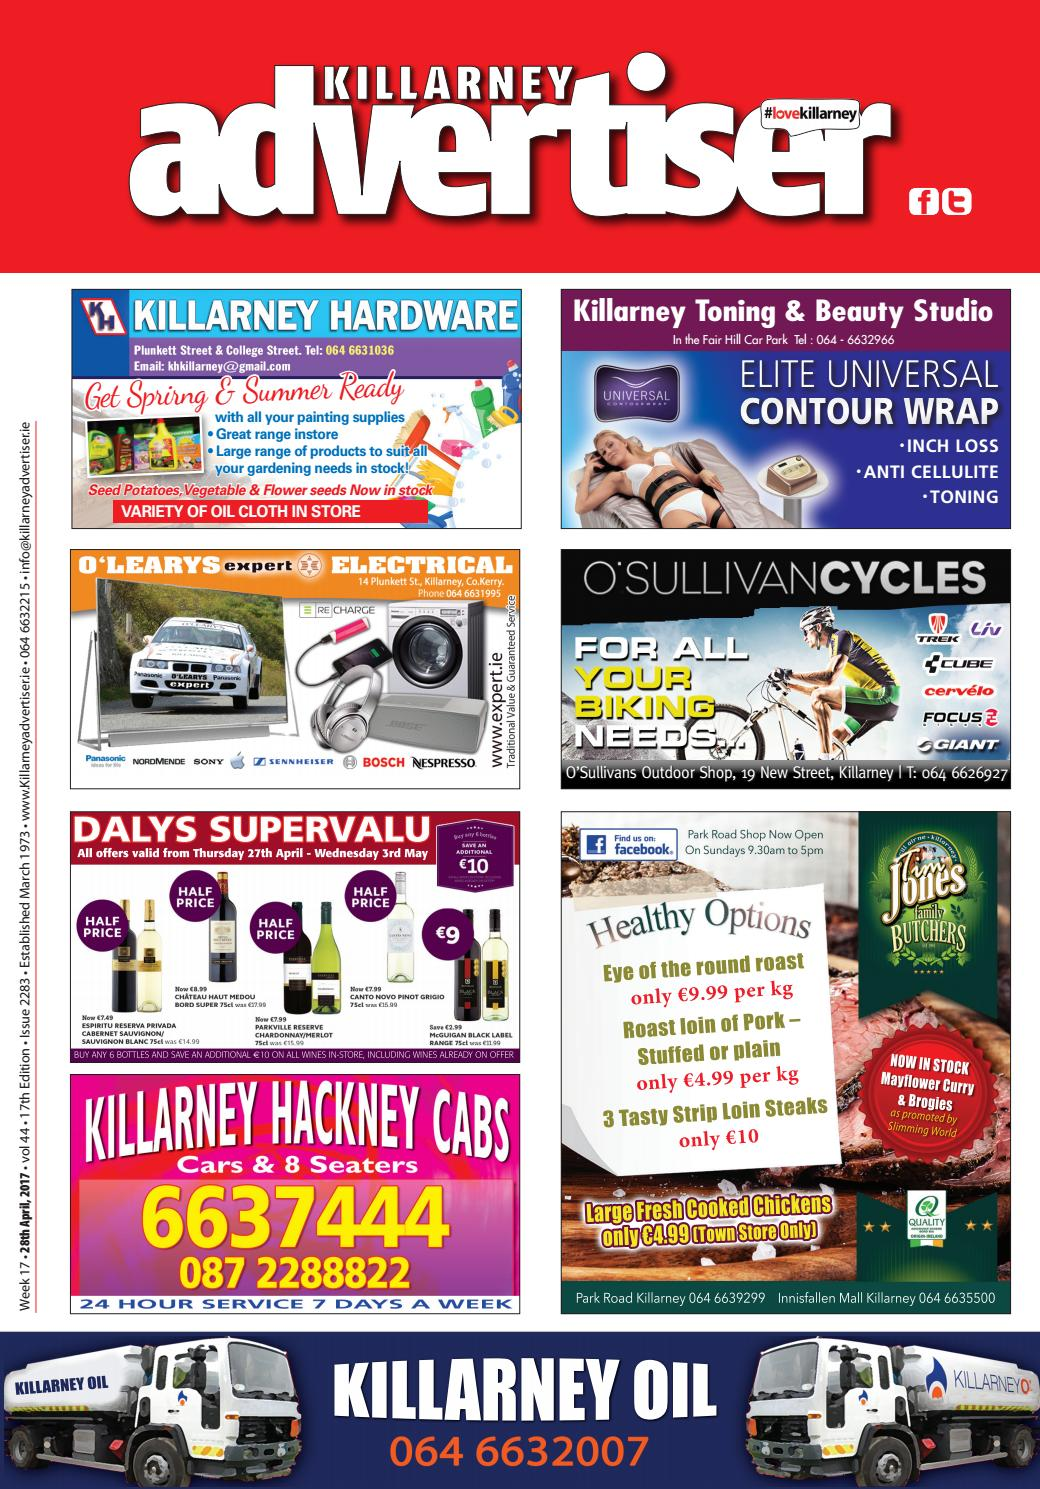 killarney advertiser 28th april 2017 by killarney advertiser issuu